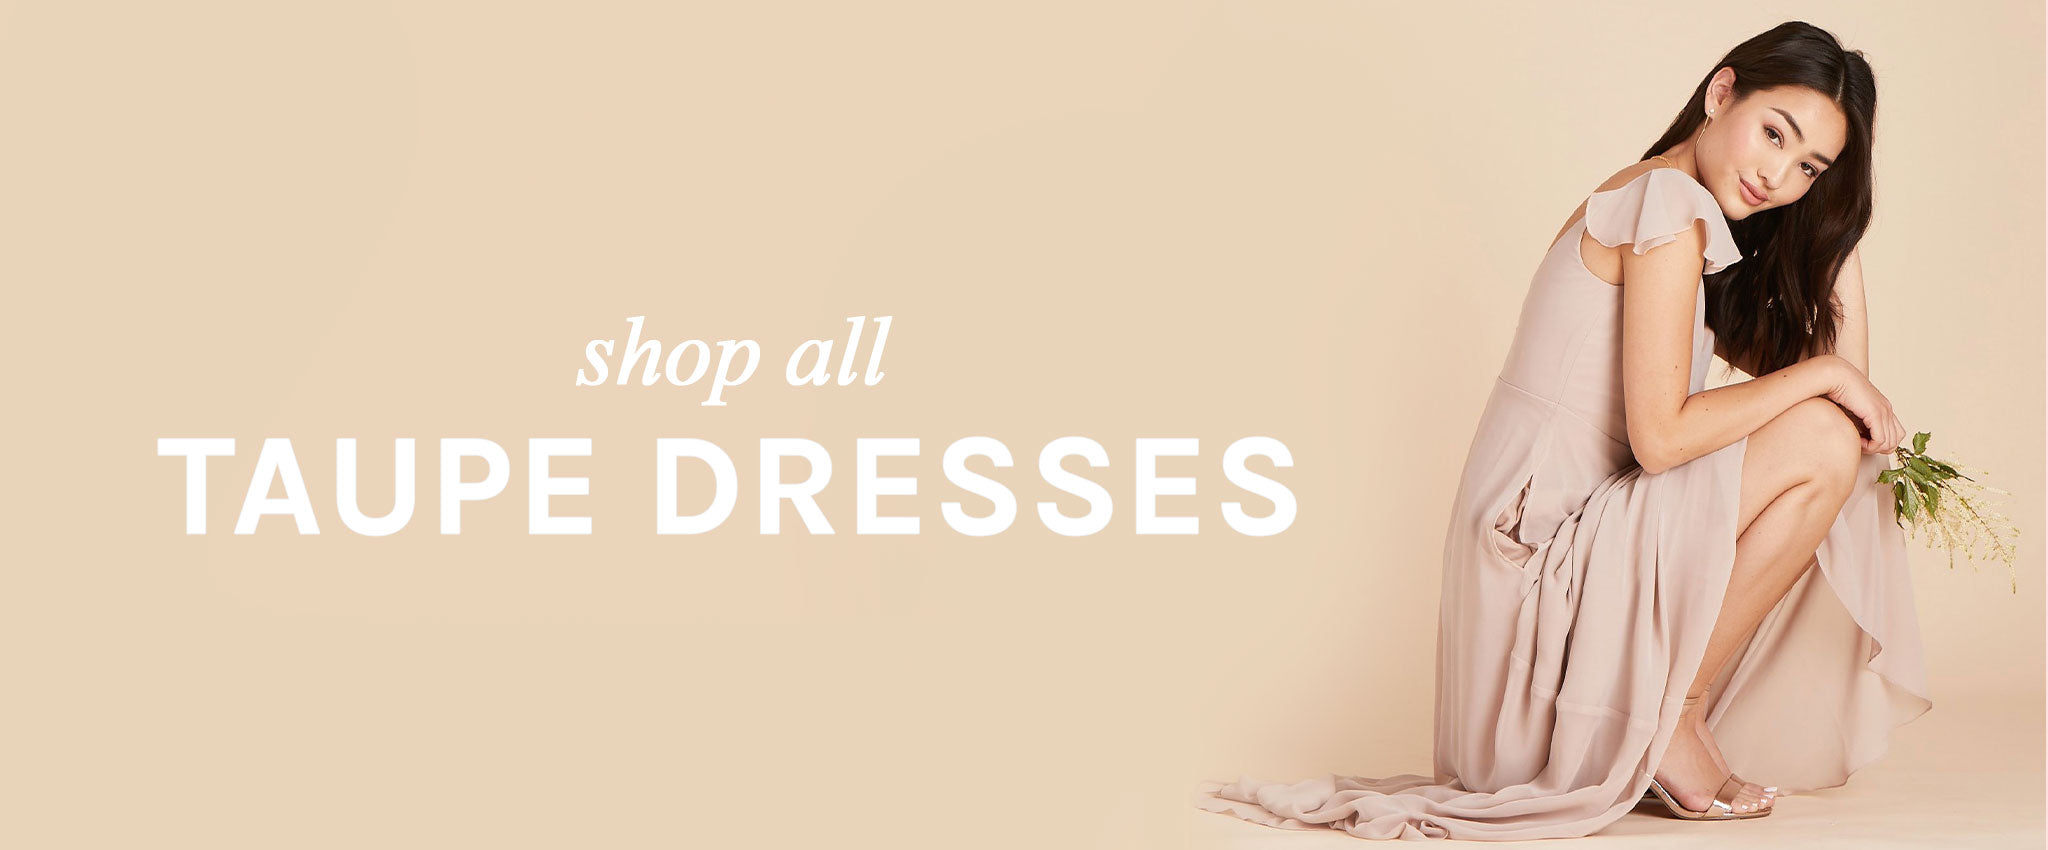 Shop All Taupe Dresses